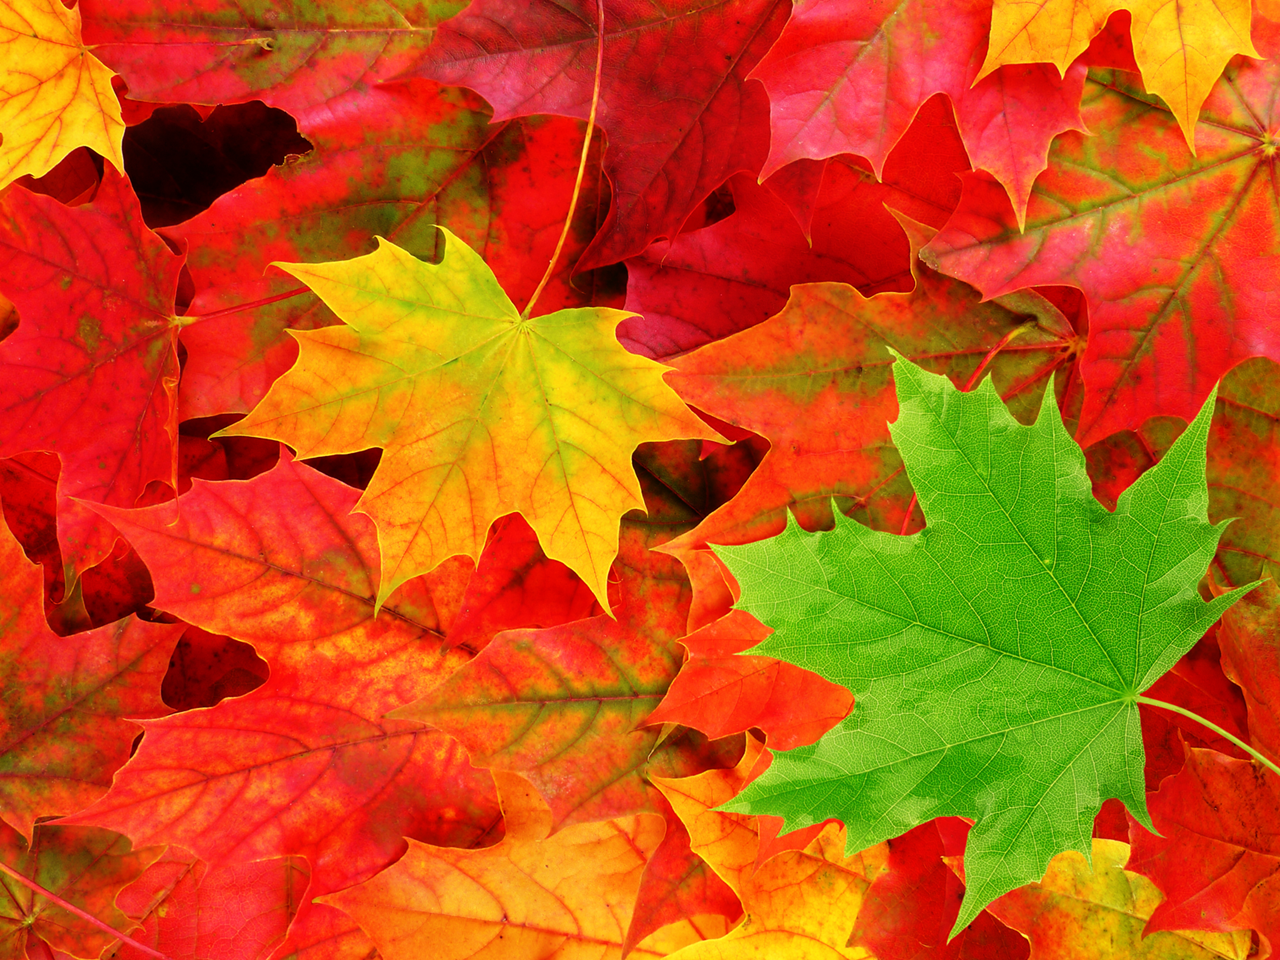 Autumn Leaves HD Widescreen Wallpaper Download, Joseph Elsworth